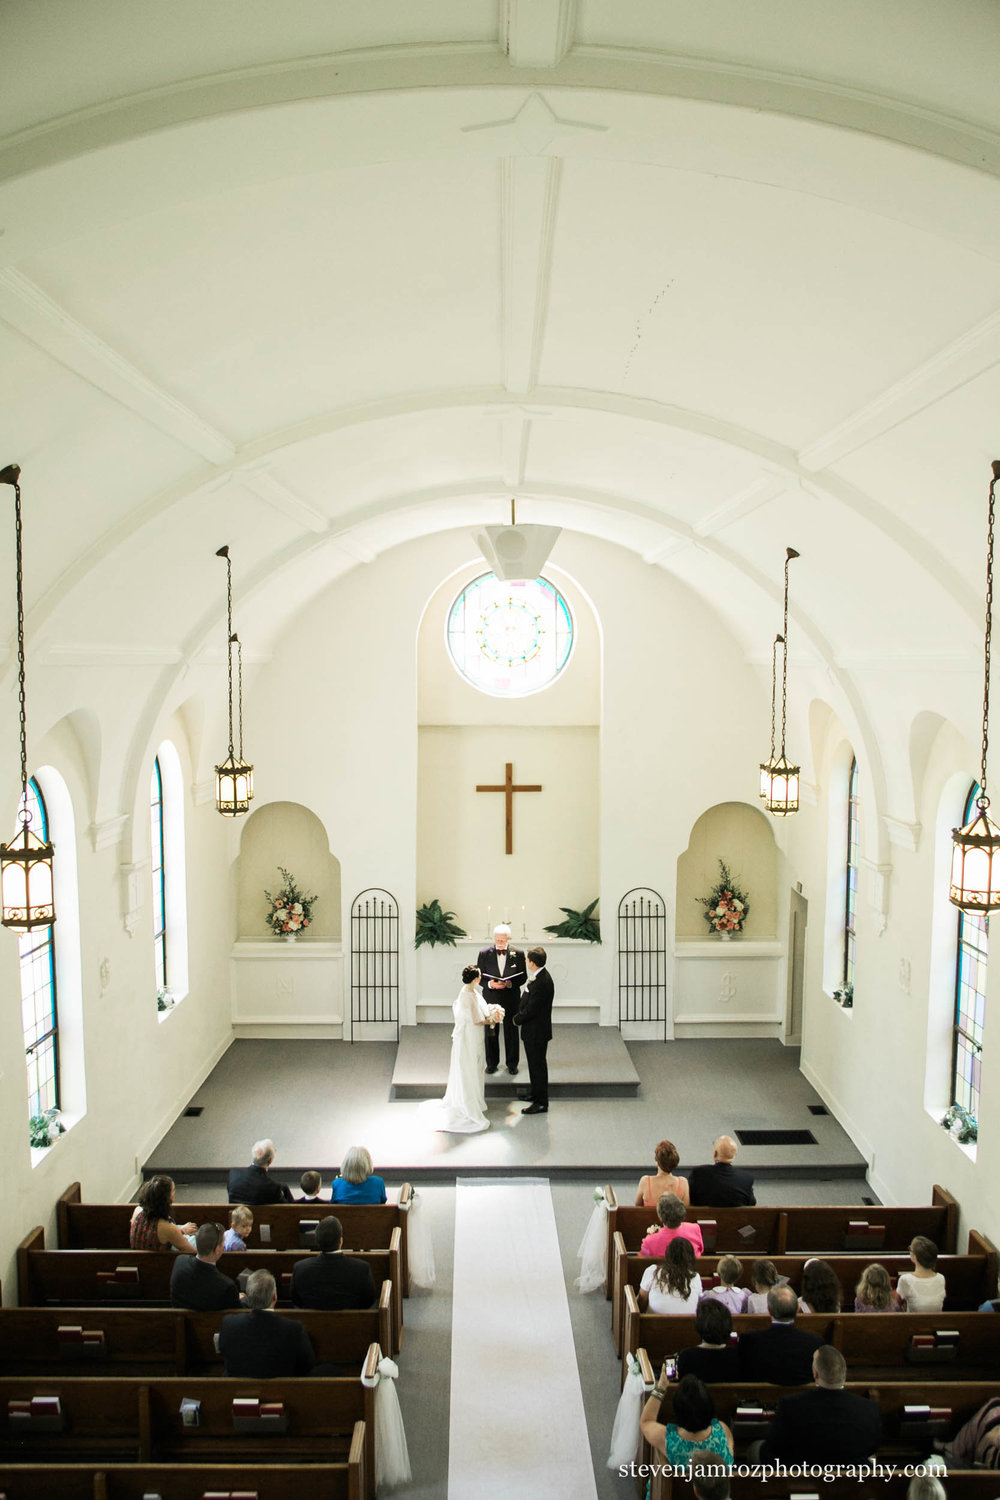 classic-chapel-wedding-steven-jamroz-photography-0173.jpg